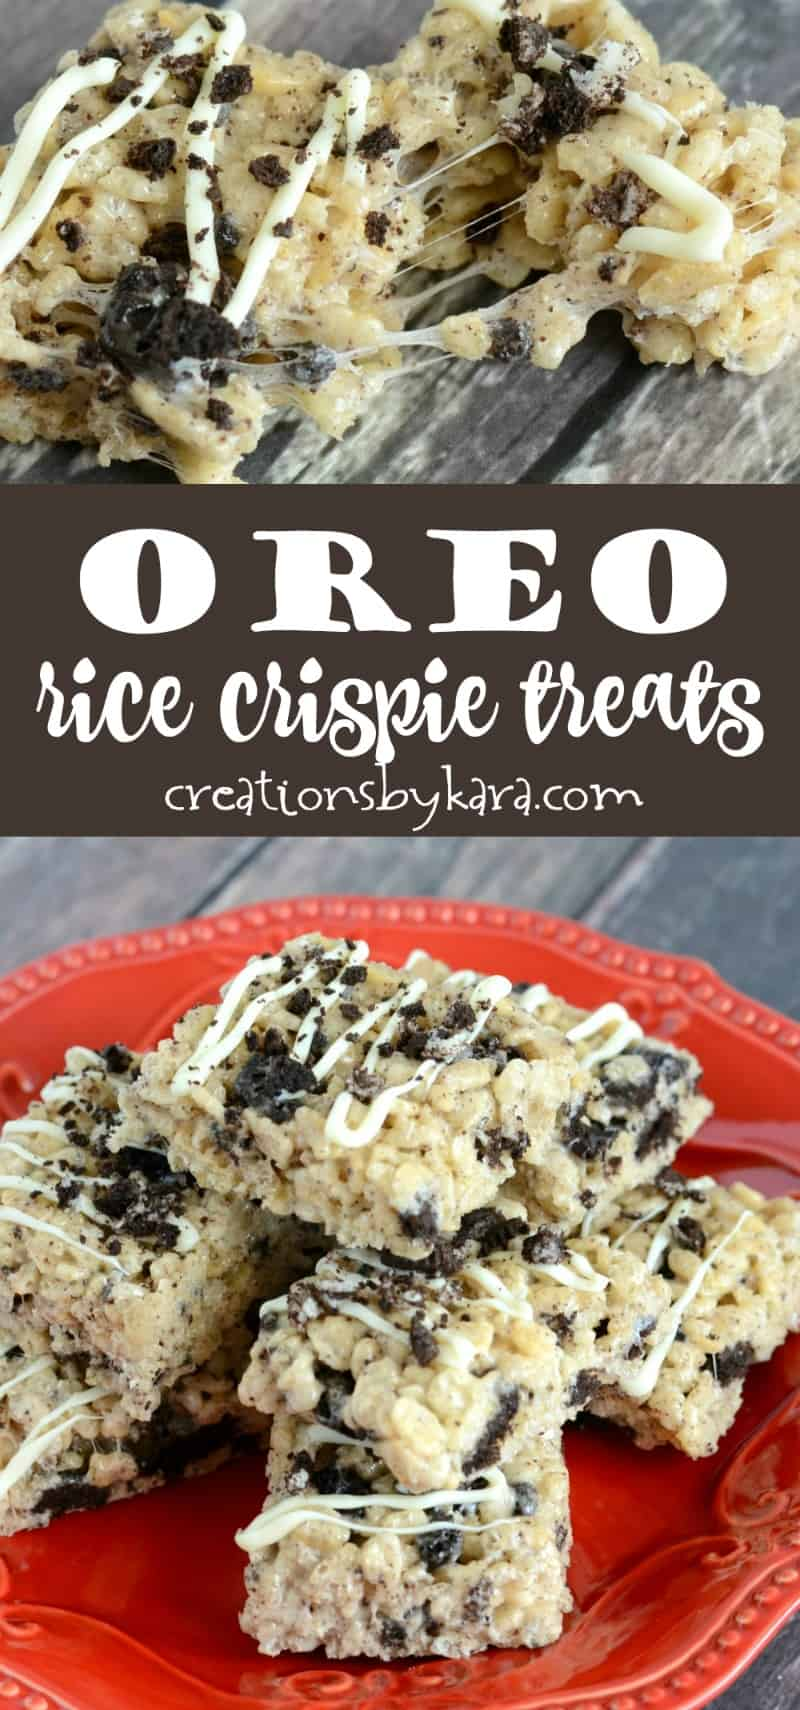 Oreo Rice Crispy Treats - ooey gooey rice crispy treats loaded with chunks of Oreos. Drizzle them with white chocolate for an extra special treat! #oreos #ricecrispytreats